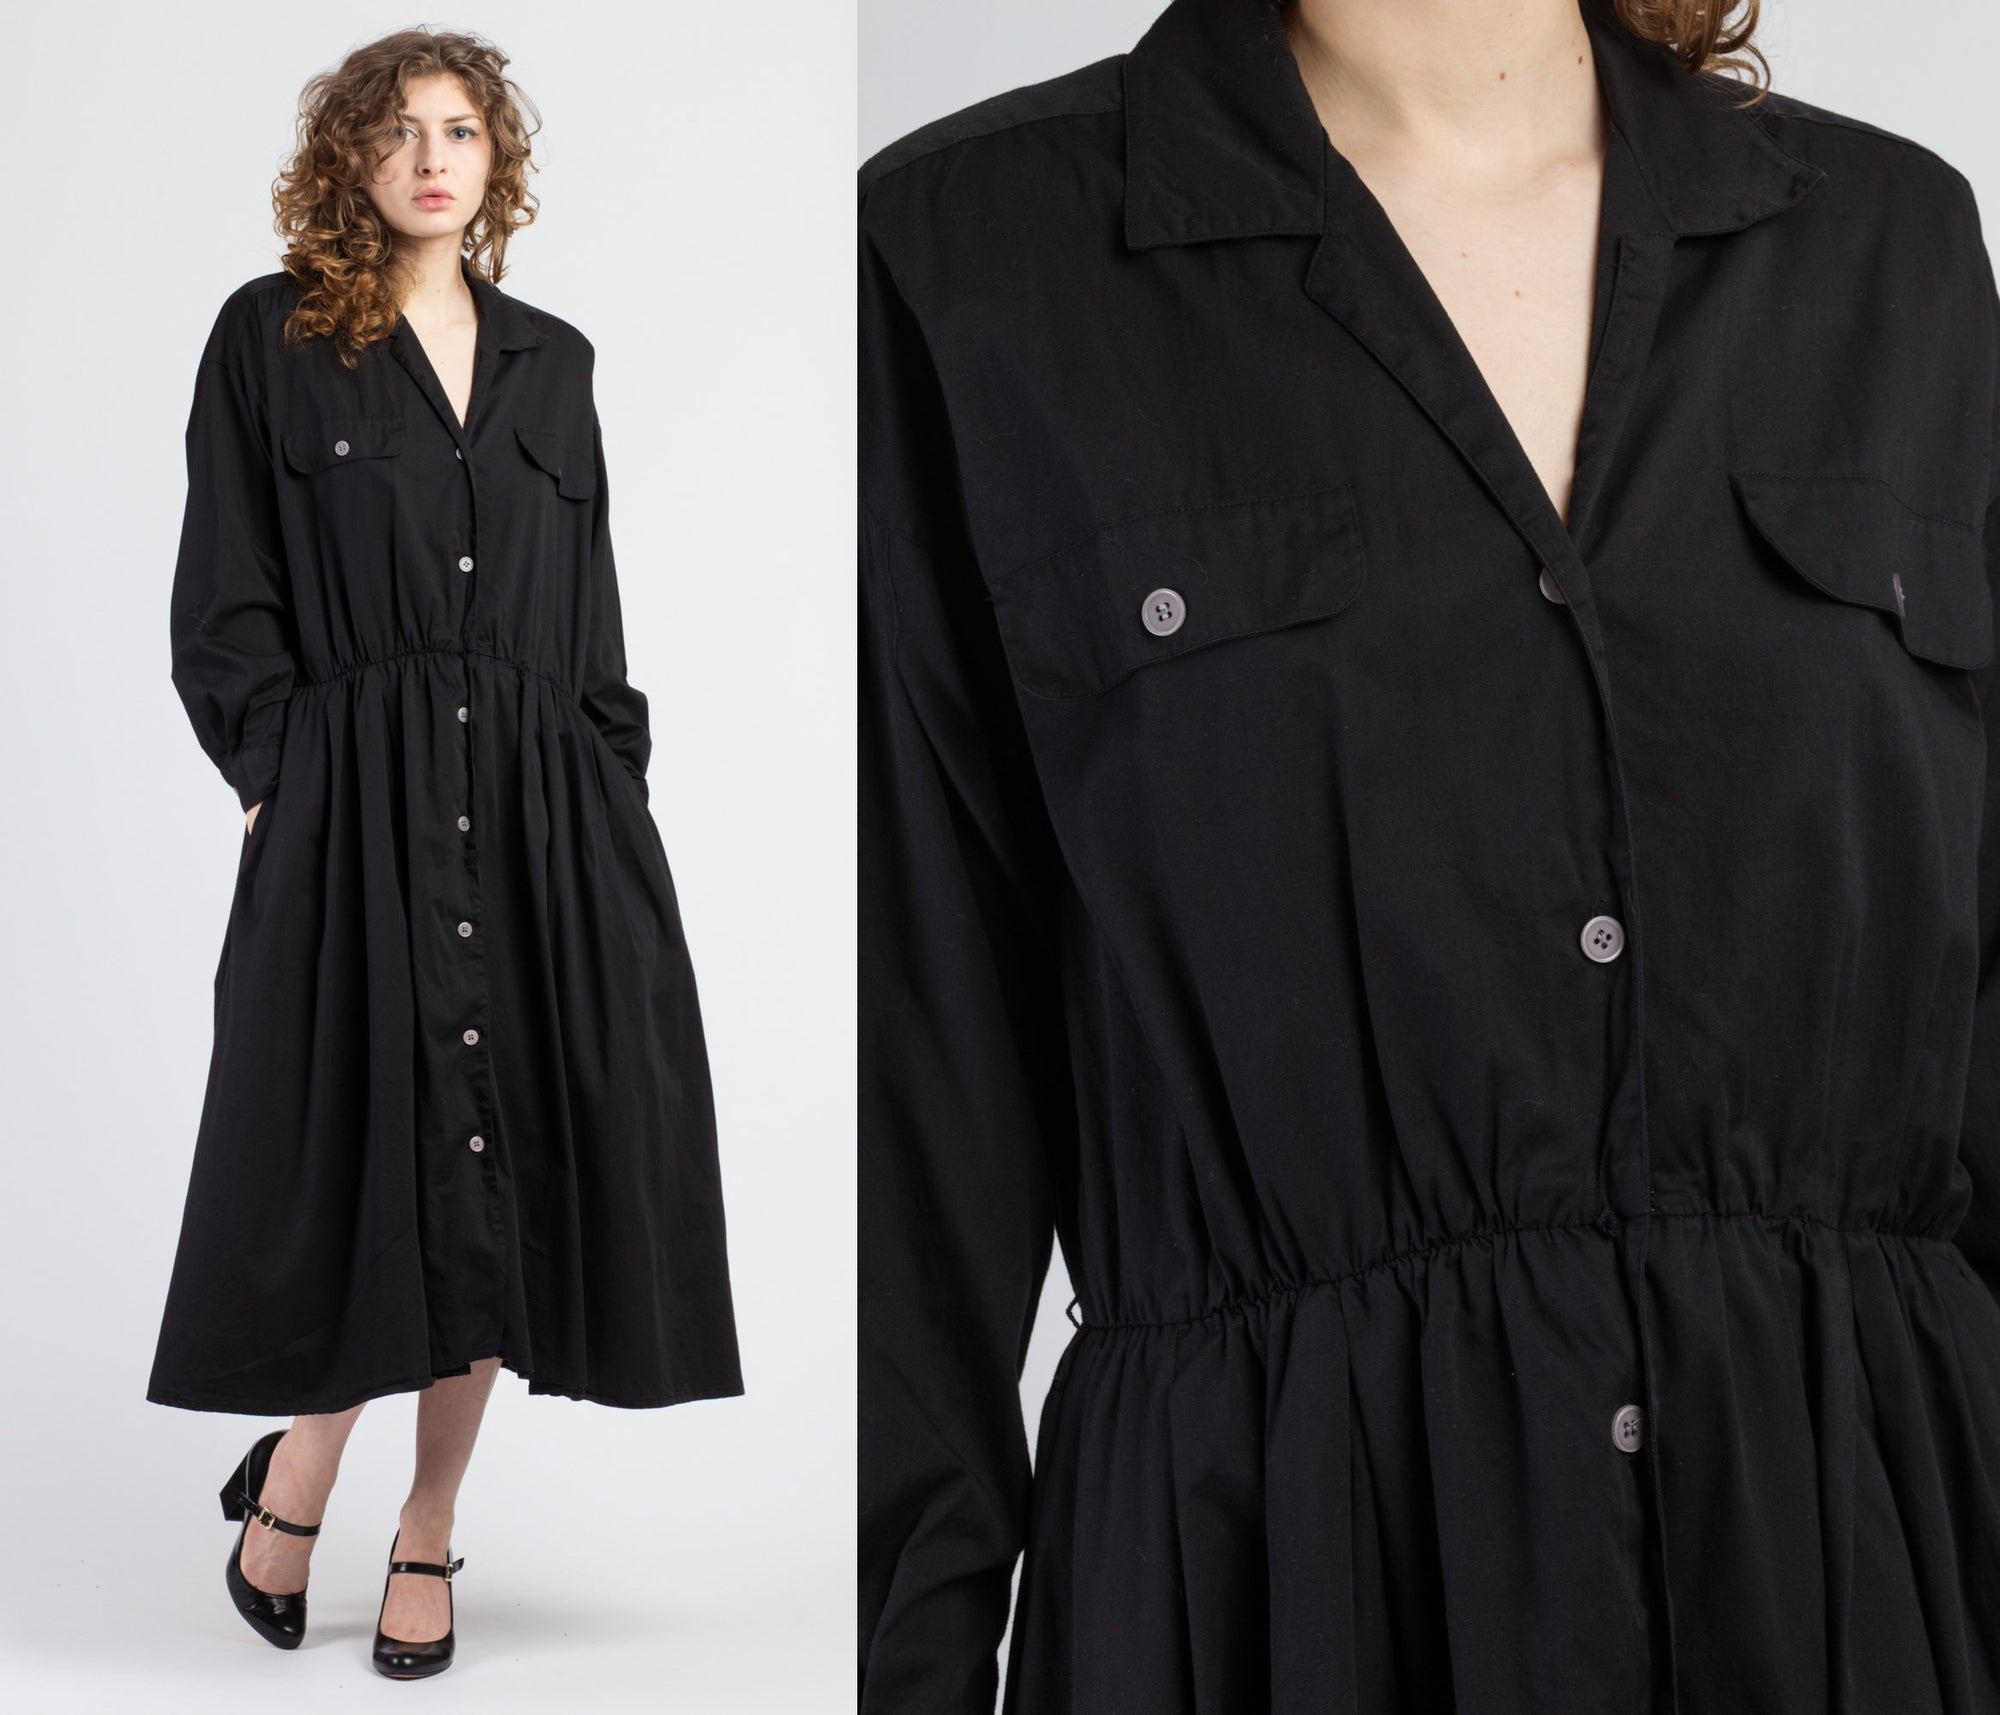 80s Black Cotton Midi Shirtdress - Extra Large